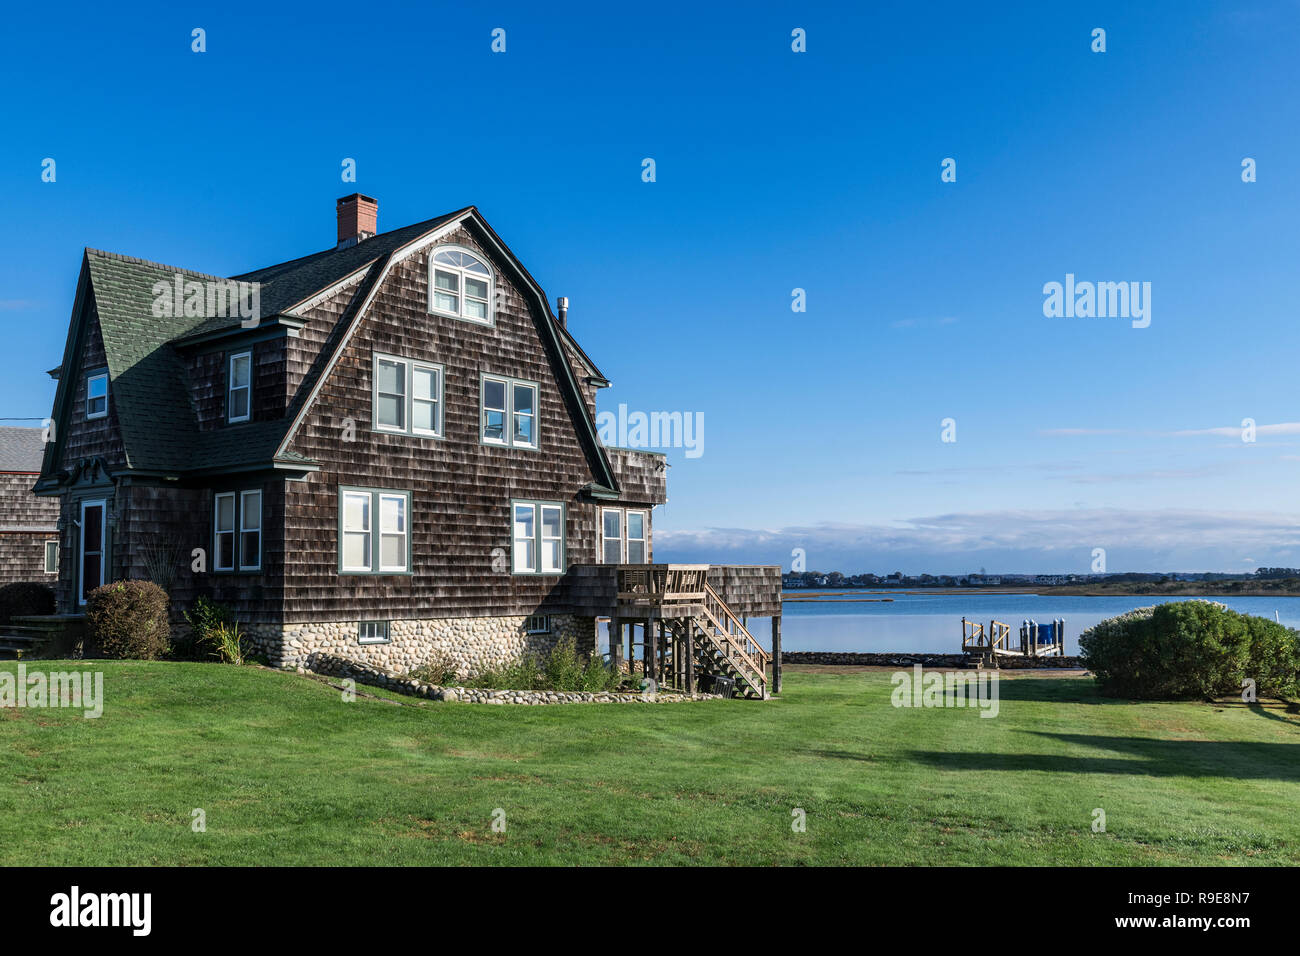 Charming waterfront beach house, Snug Harbor, Wakefield, Rhode Island, USA. - Stock Image